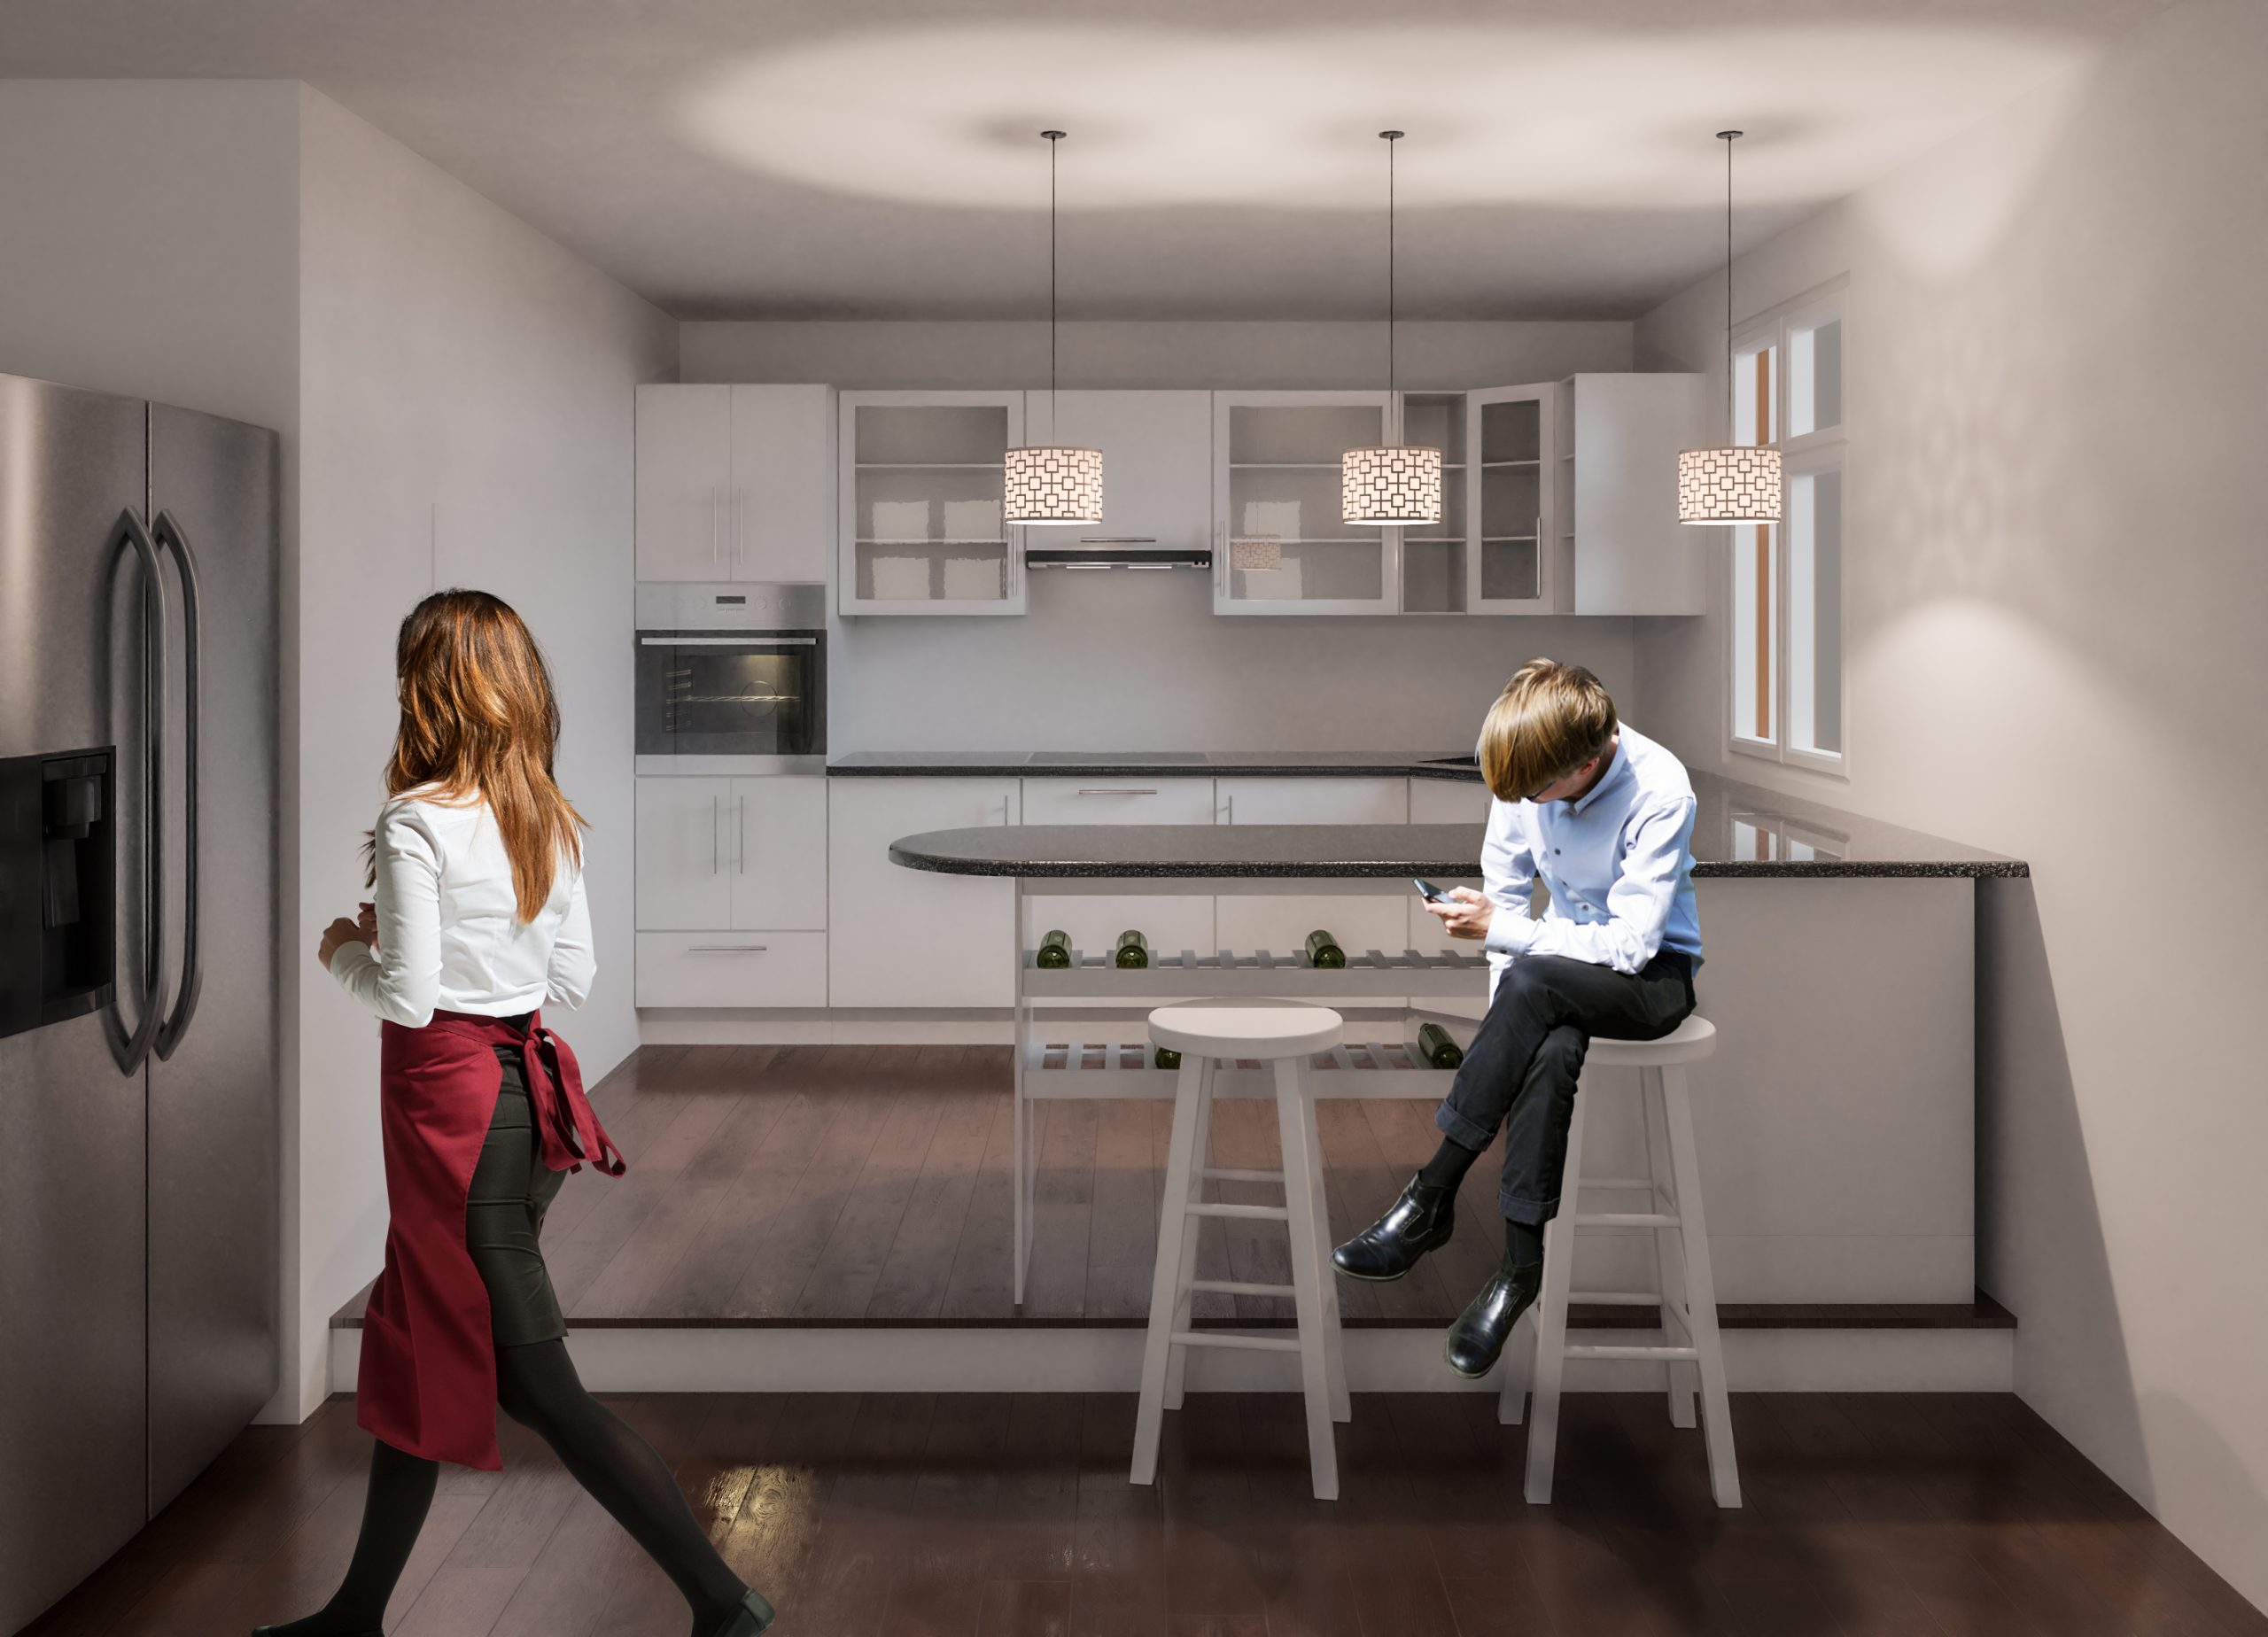 3D-Inerieur-Gallery-image-Kitchen-Scene-final